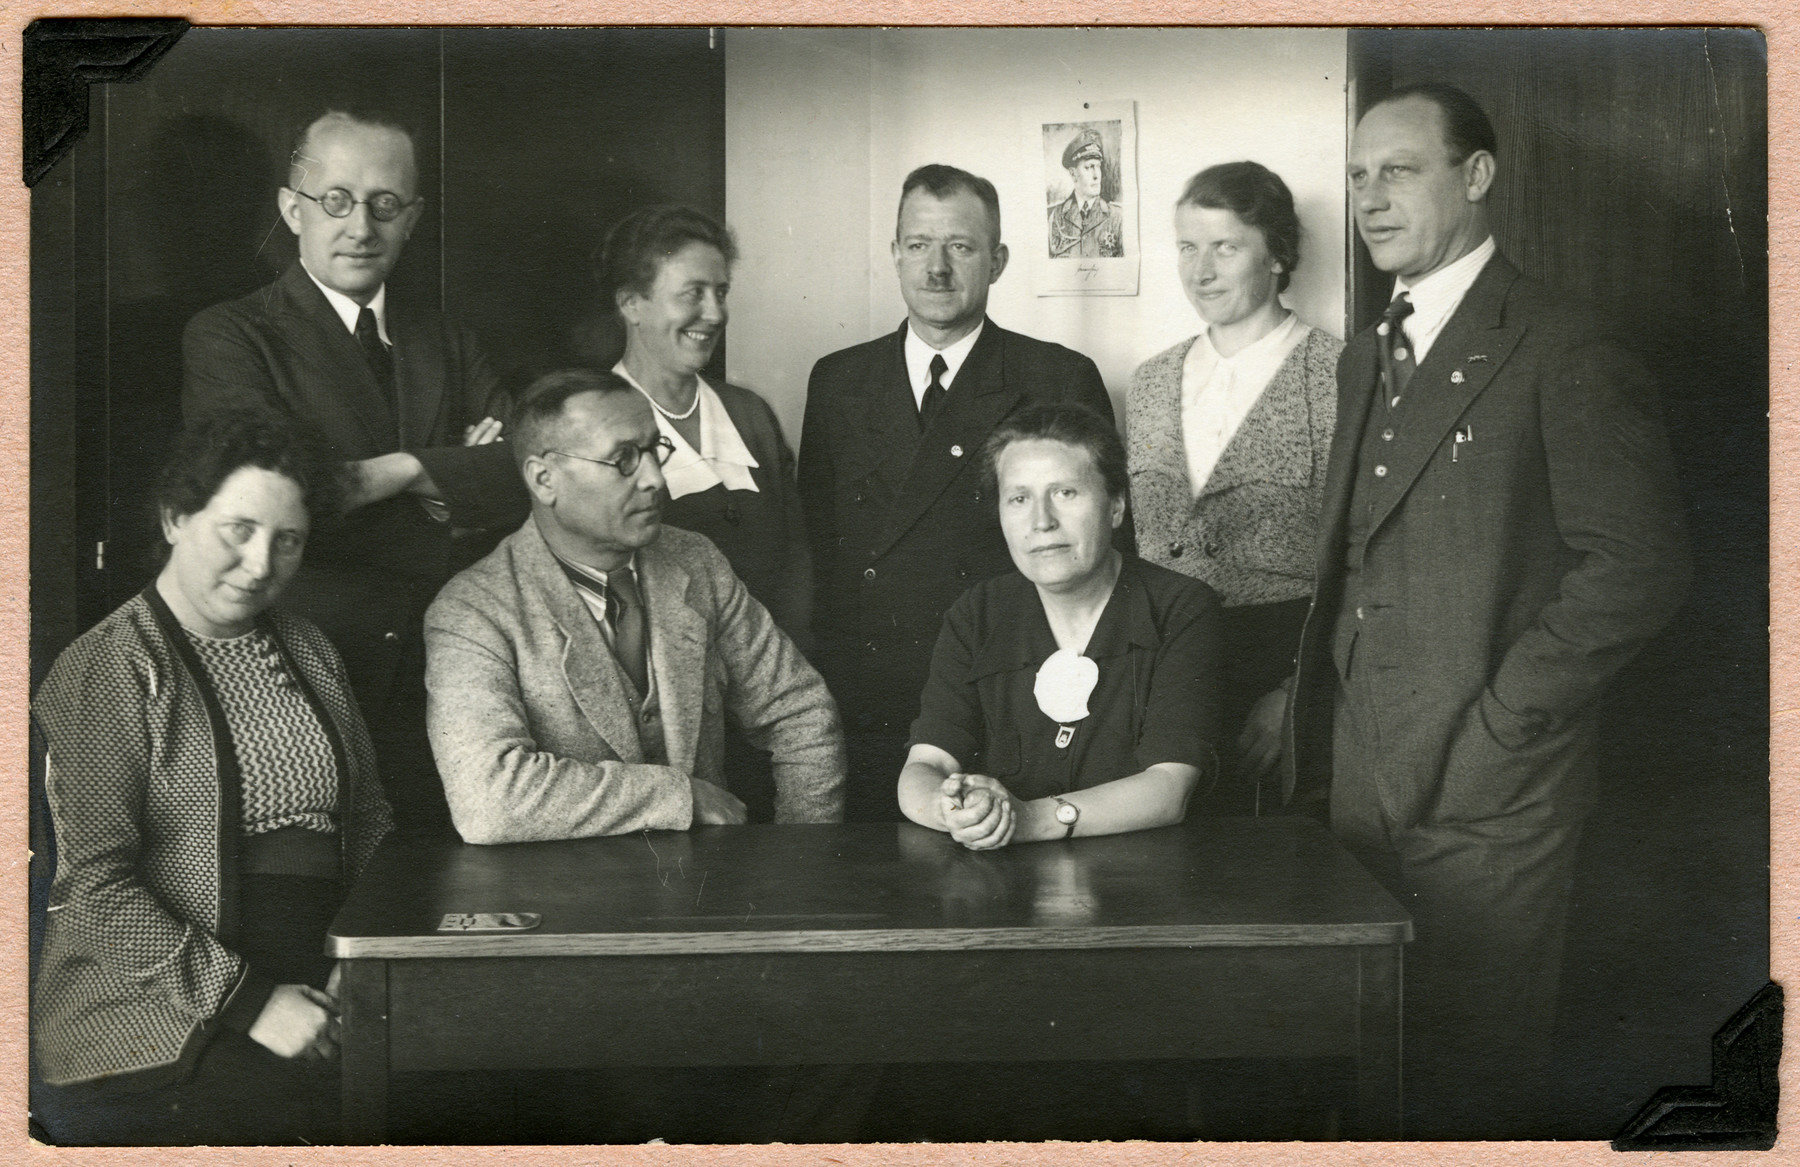 Group portrait of the teachers of a grammar school in Cologne.  Margot Alt attended this school.